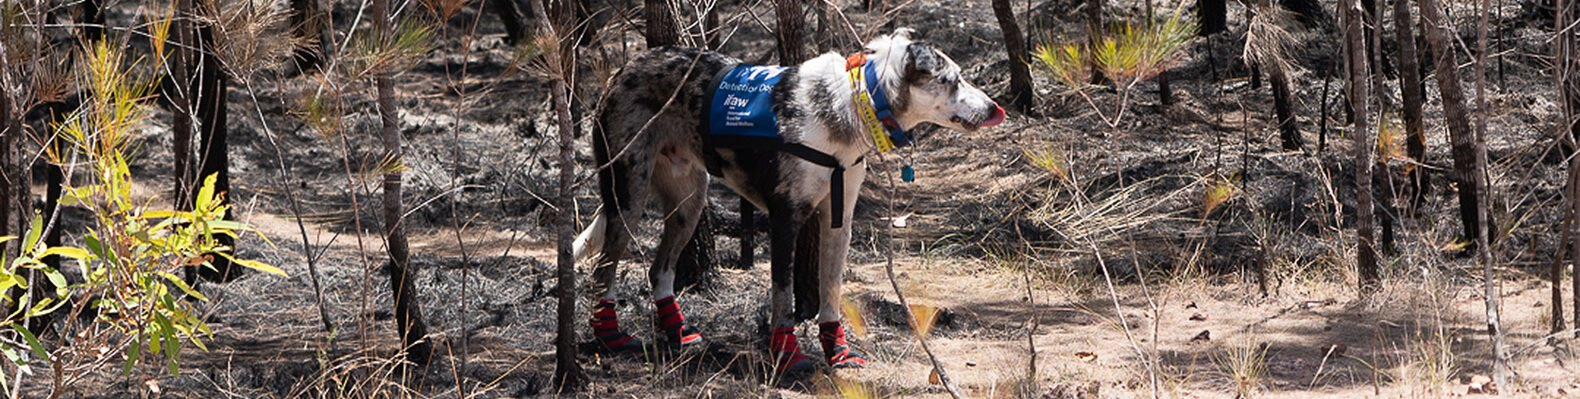 white and gray dog with blue vest and red booties in a forest